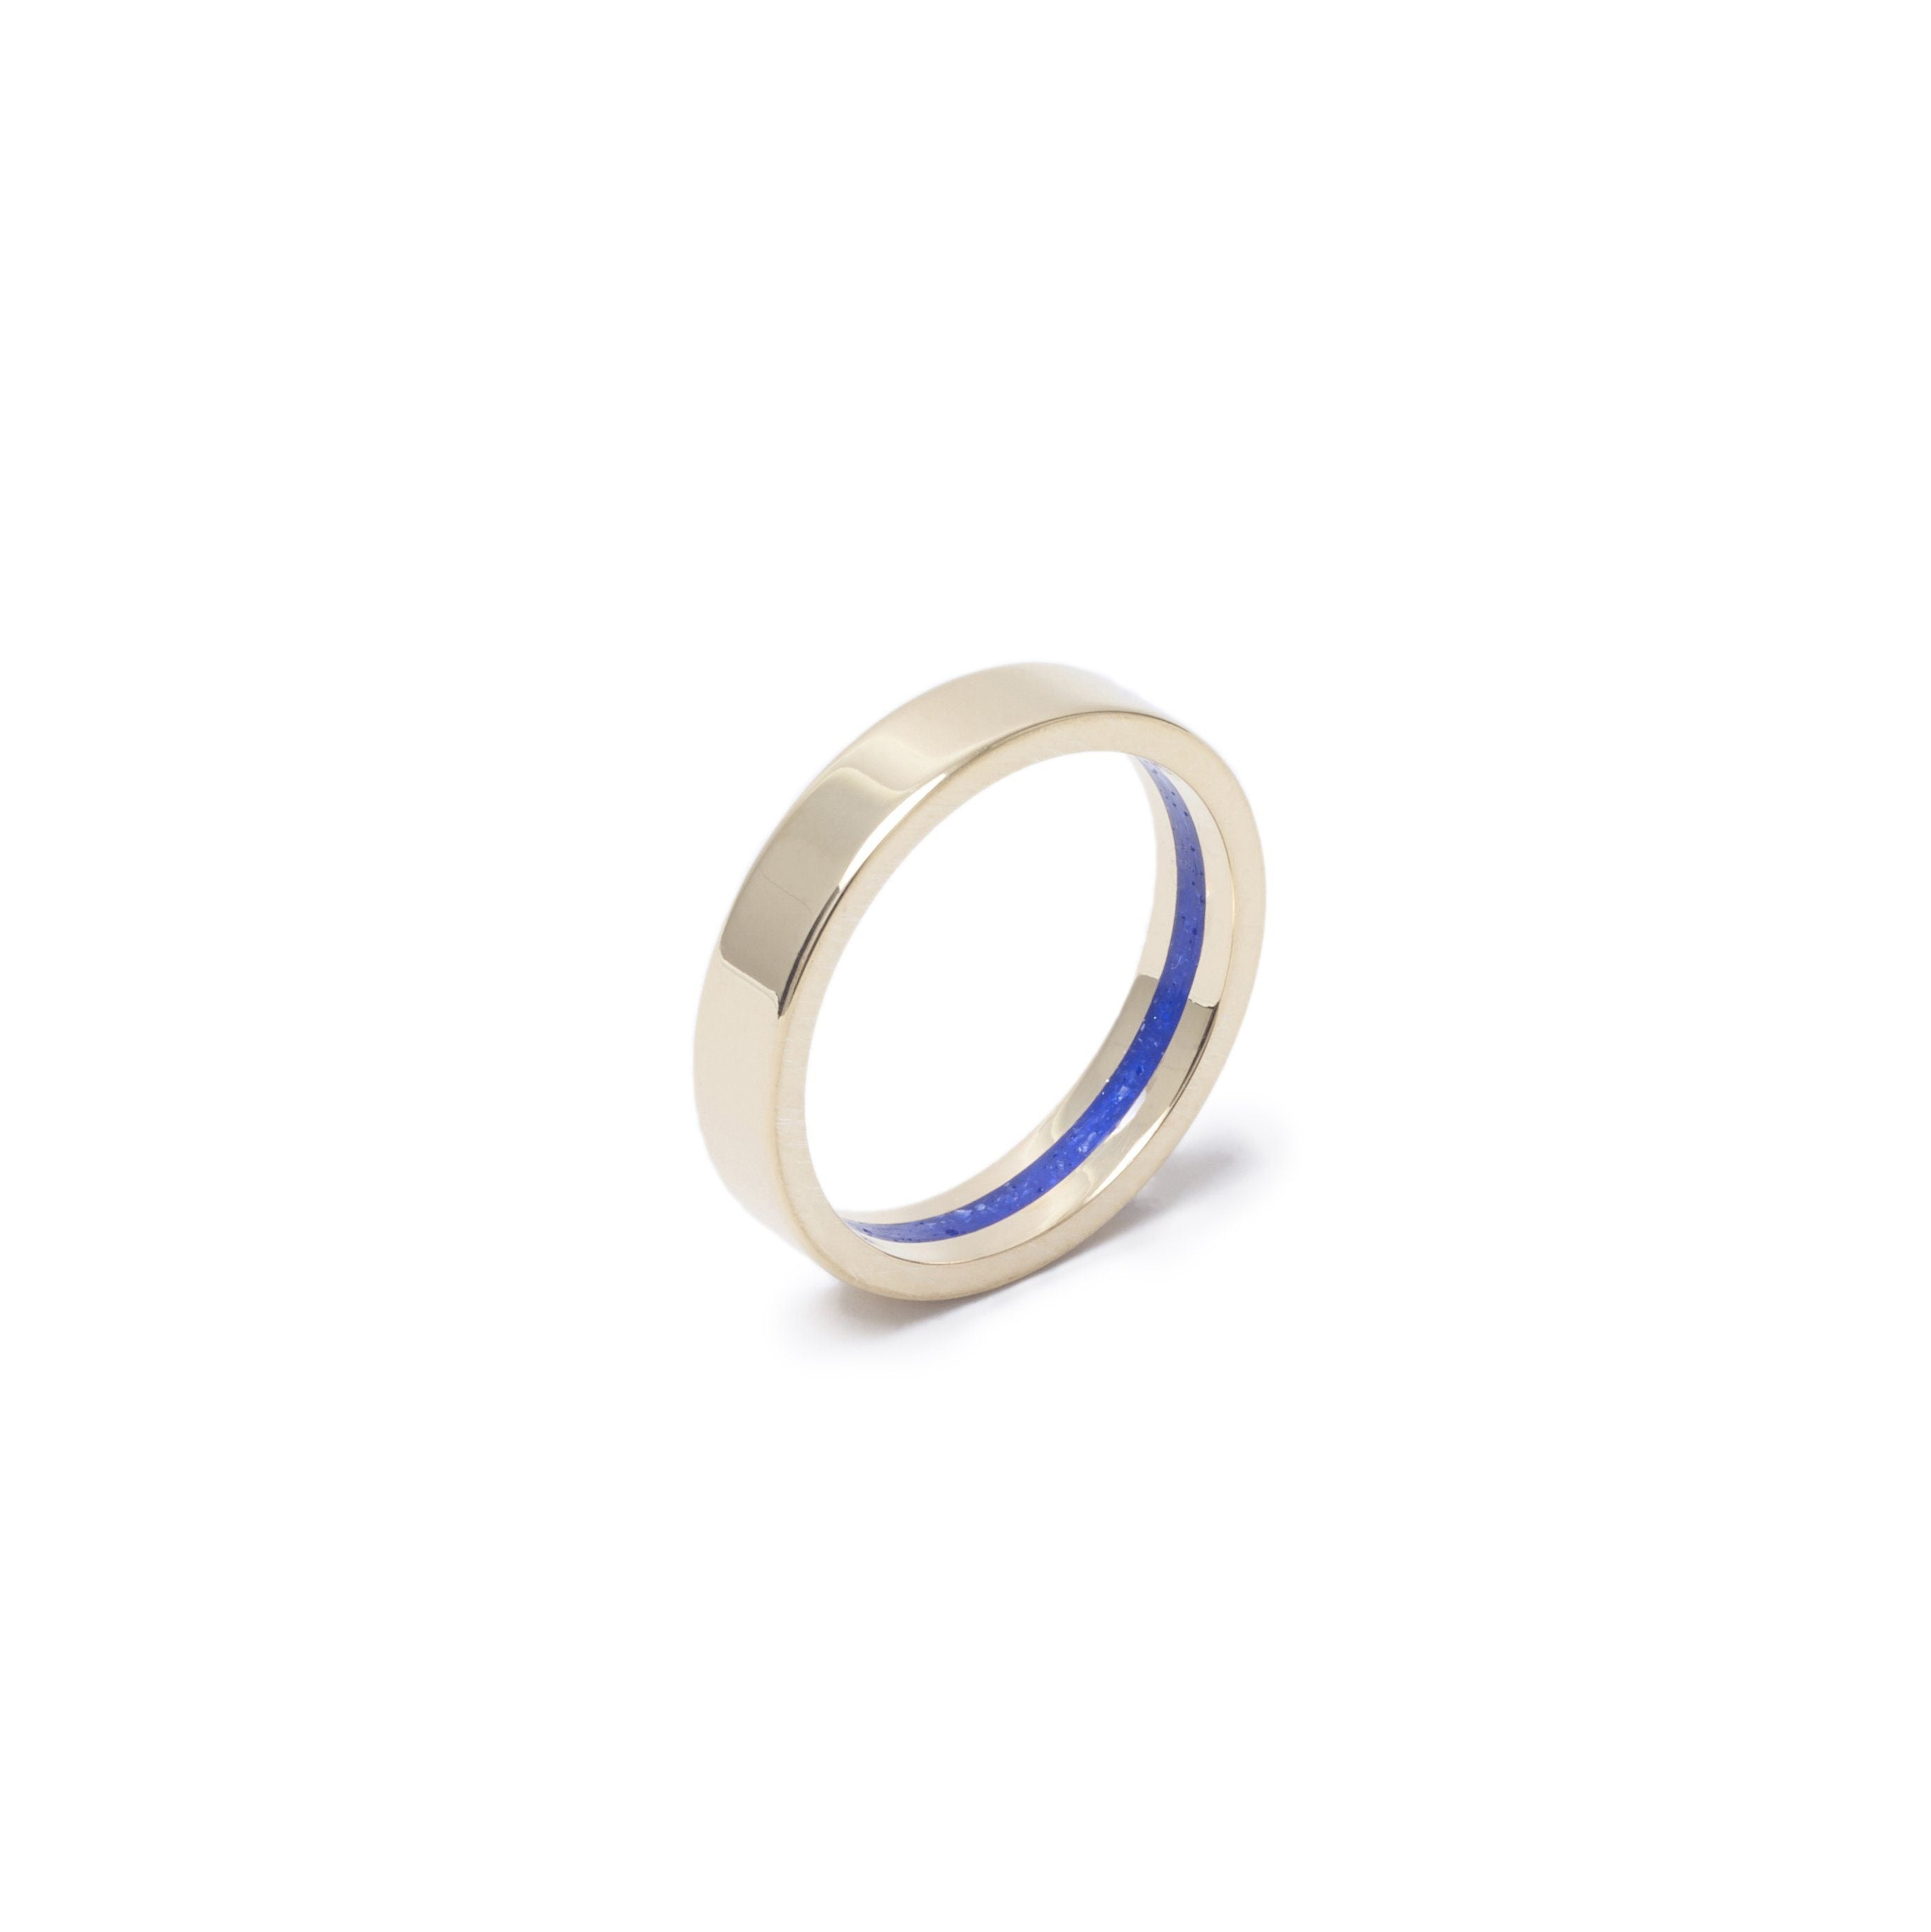 Everence Ring, 10k Yellow Gold everence.life 4mm Sky